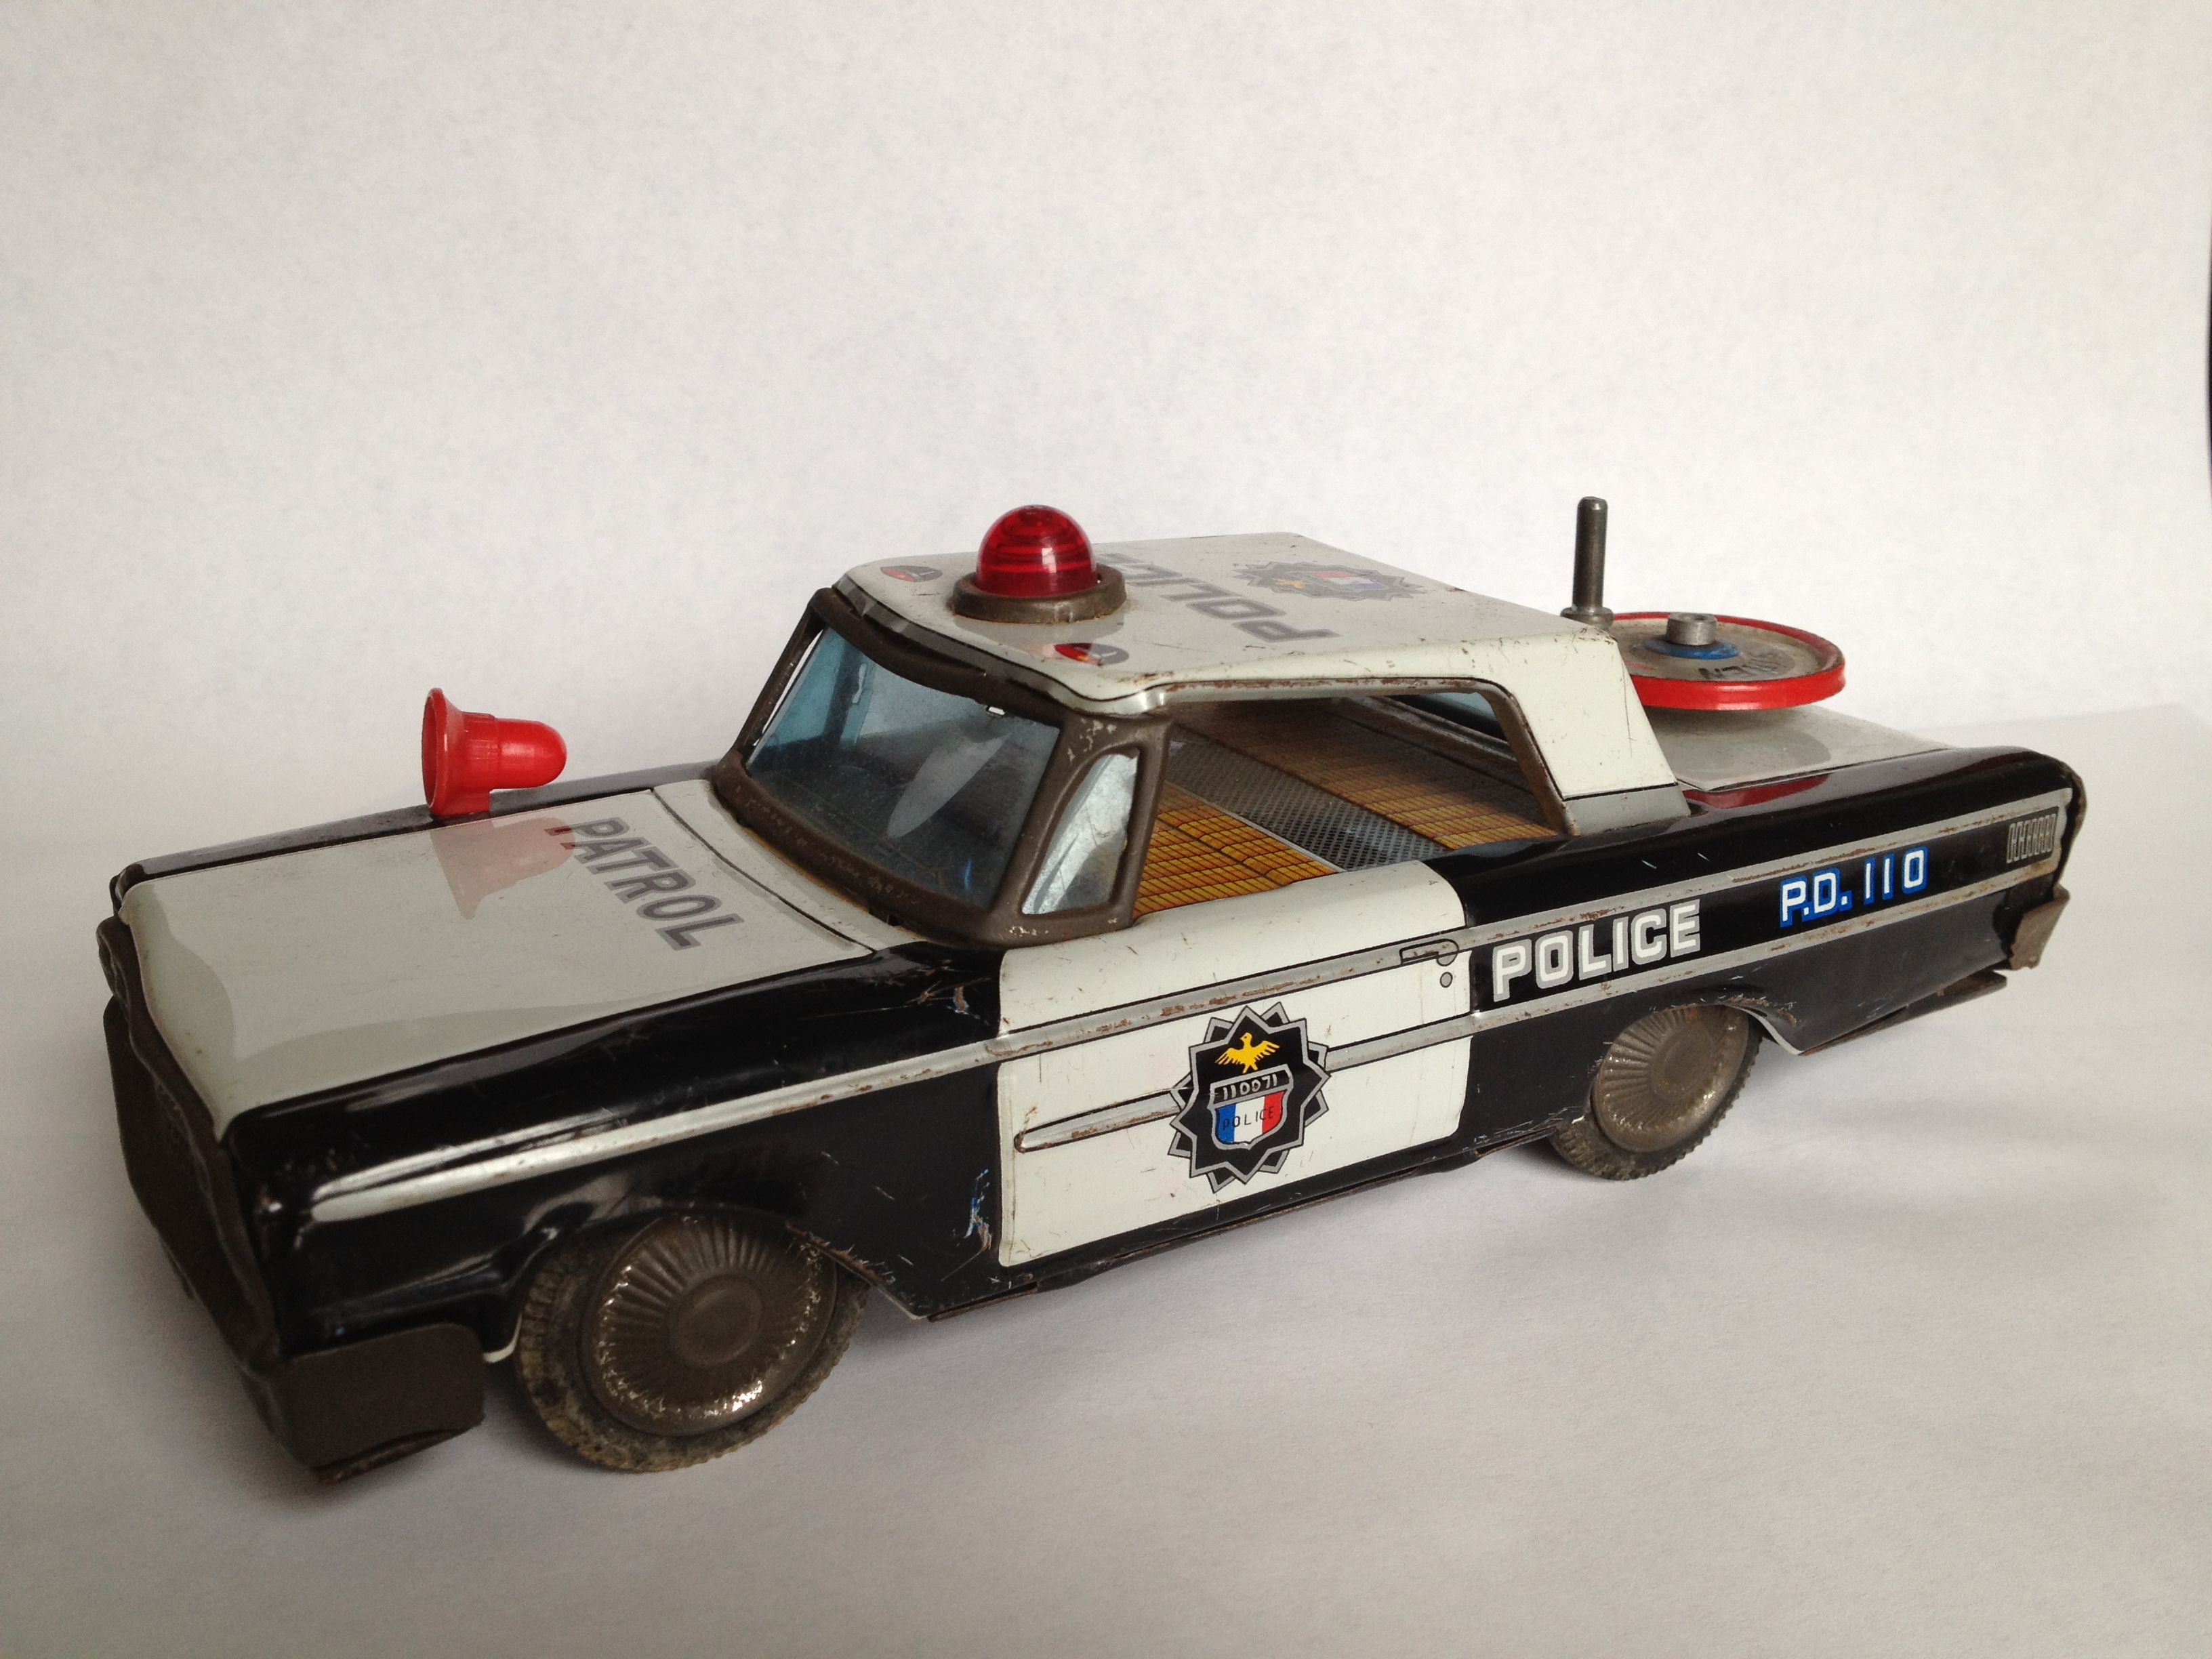 This weekend's find. 1960's tin toy police car, made in